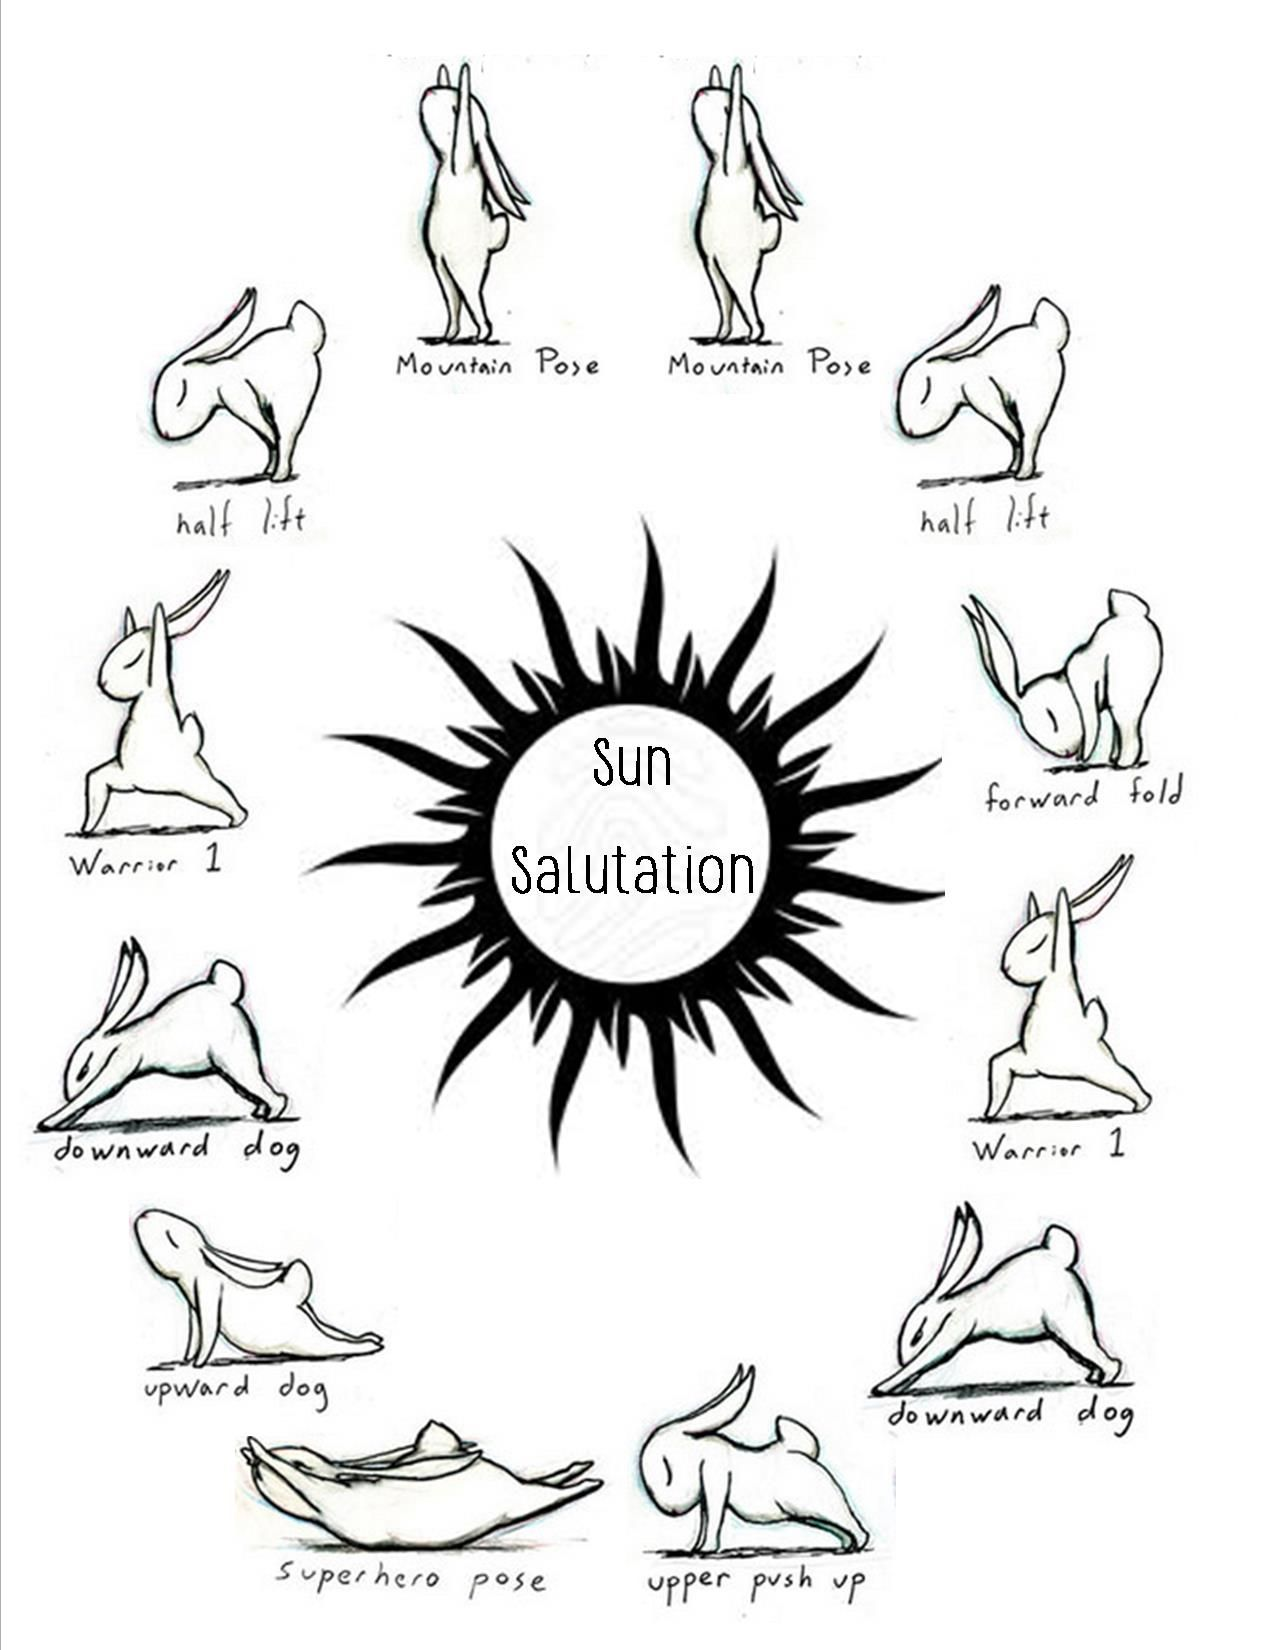 Sun Salutation Demonstrated By Bunnies ArtBrian Russo Bunnyoga Index Goes Clockwise